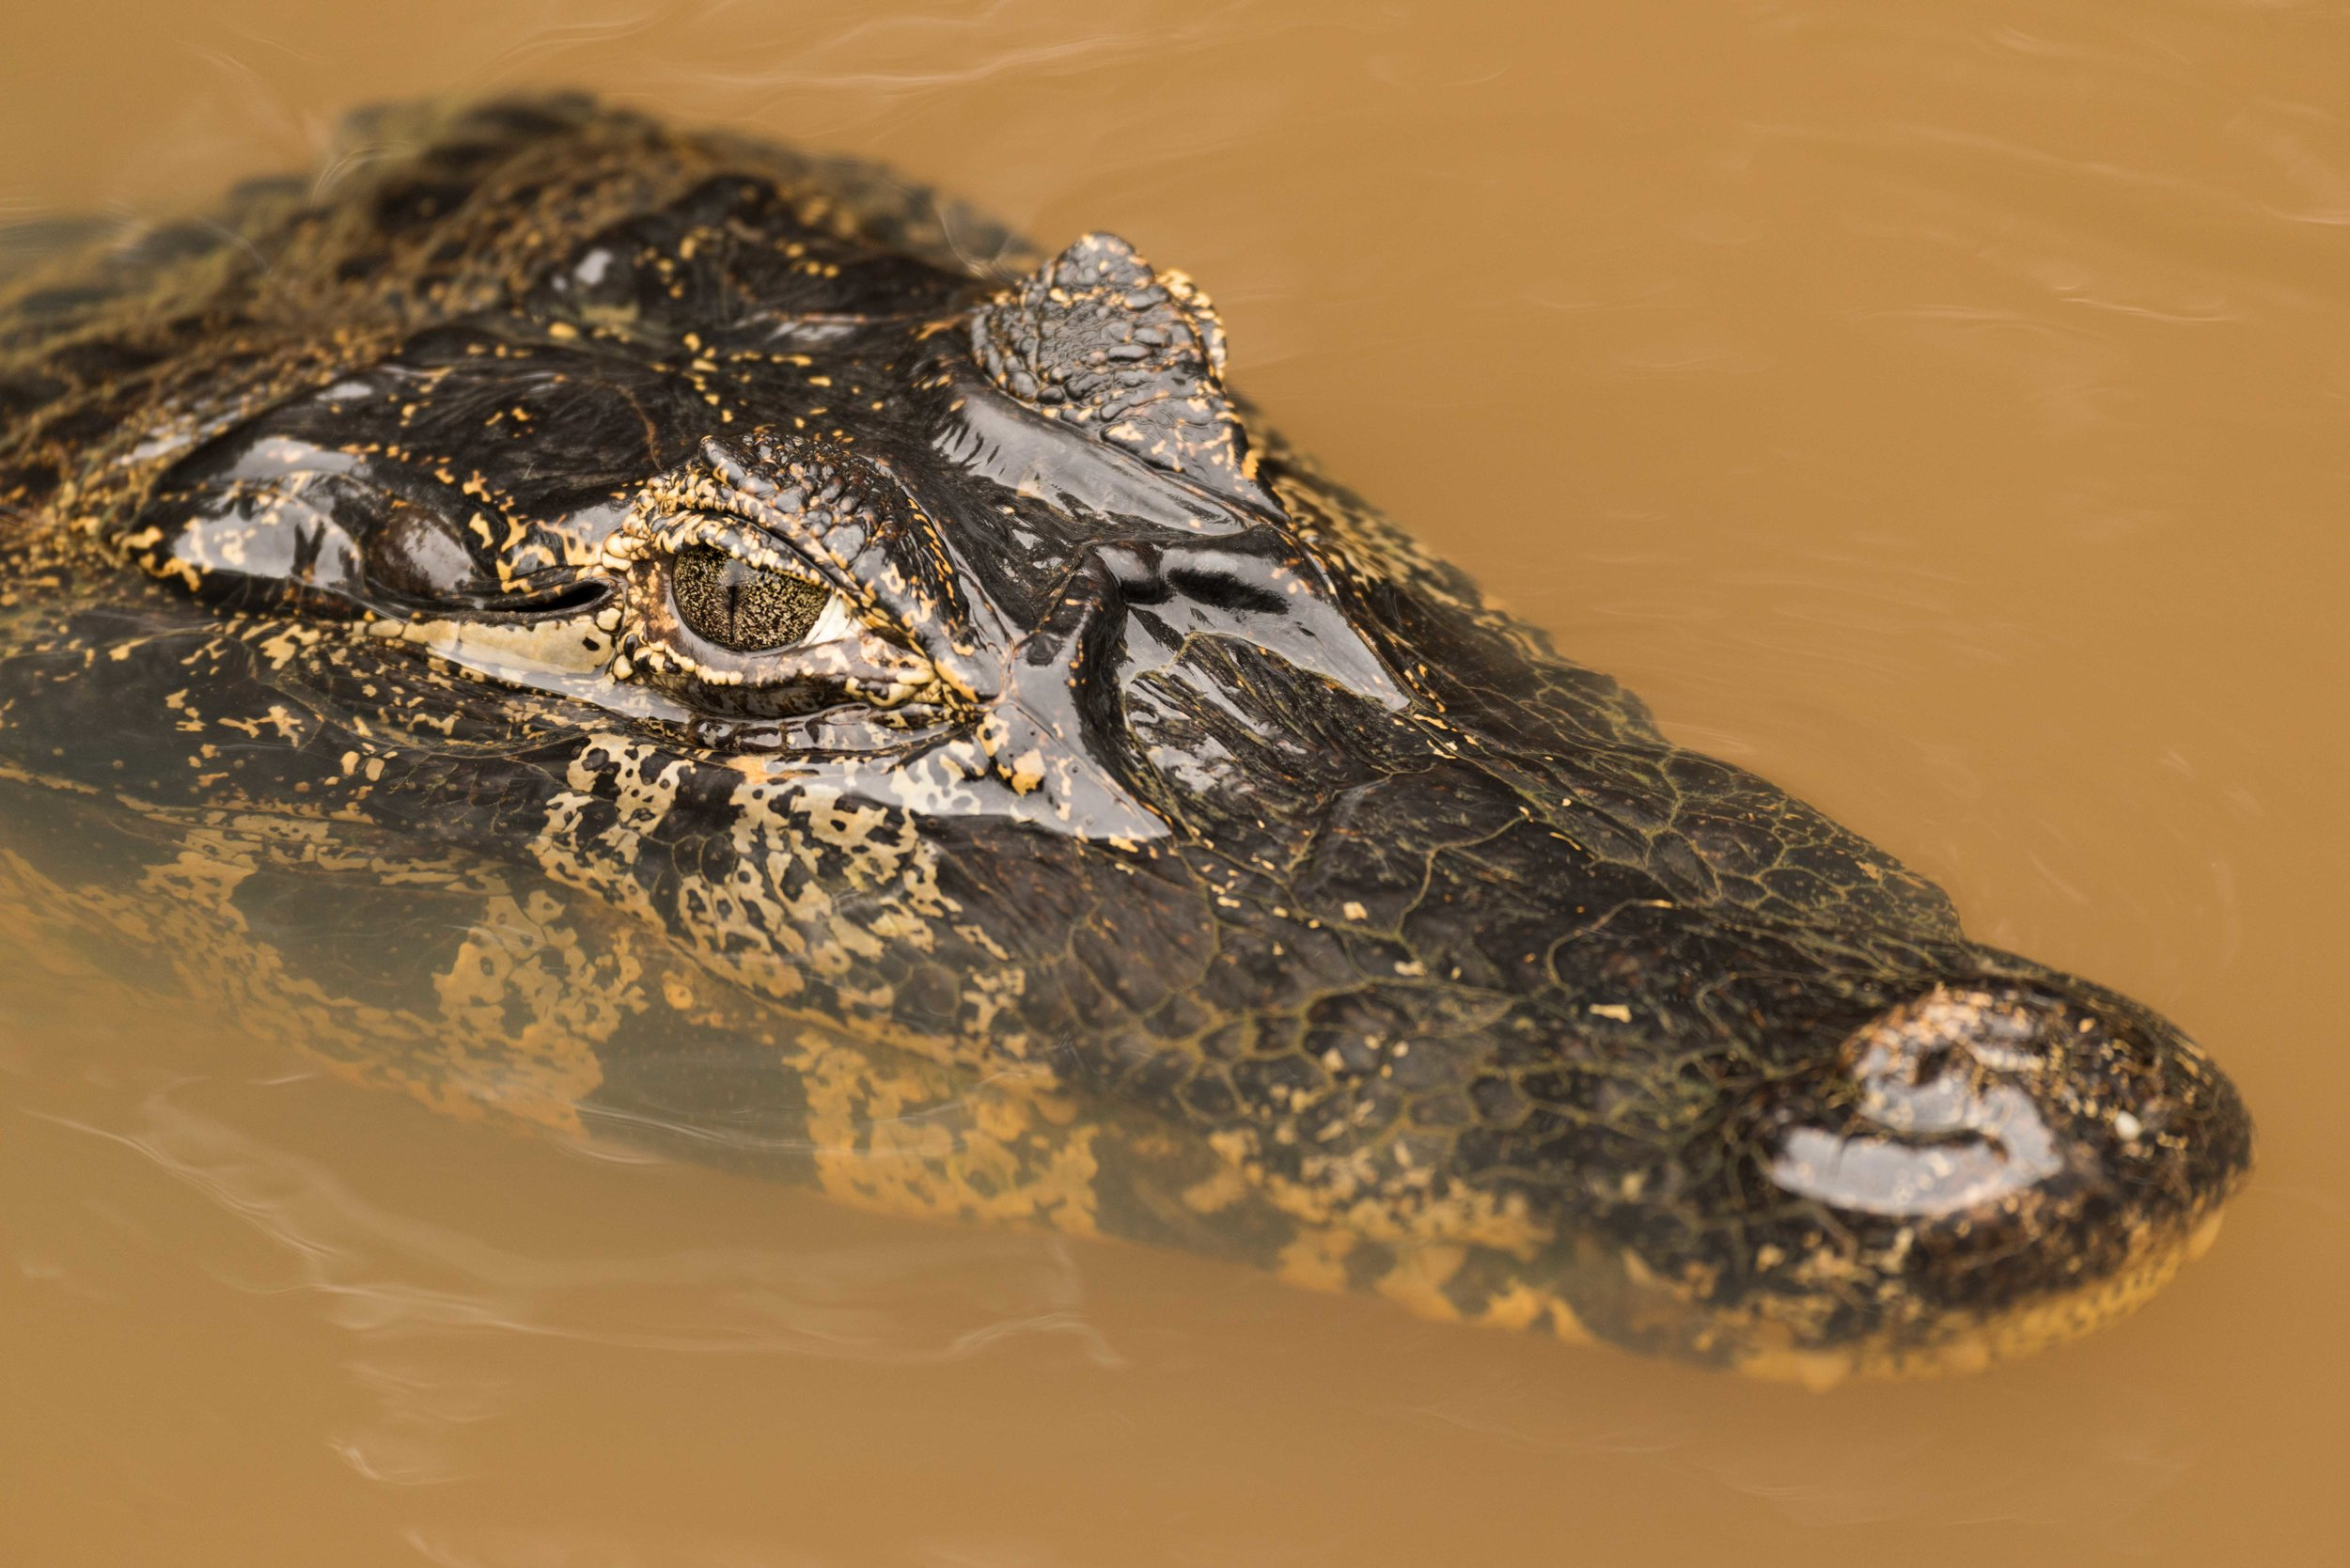 Close-up of yacare caiman head in river